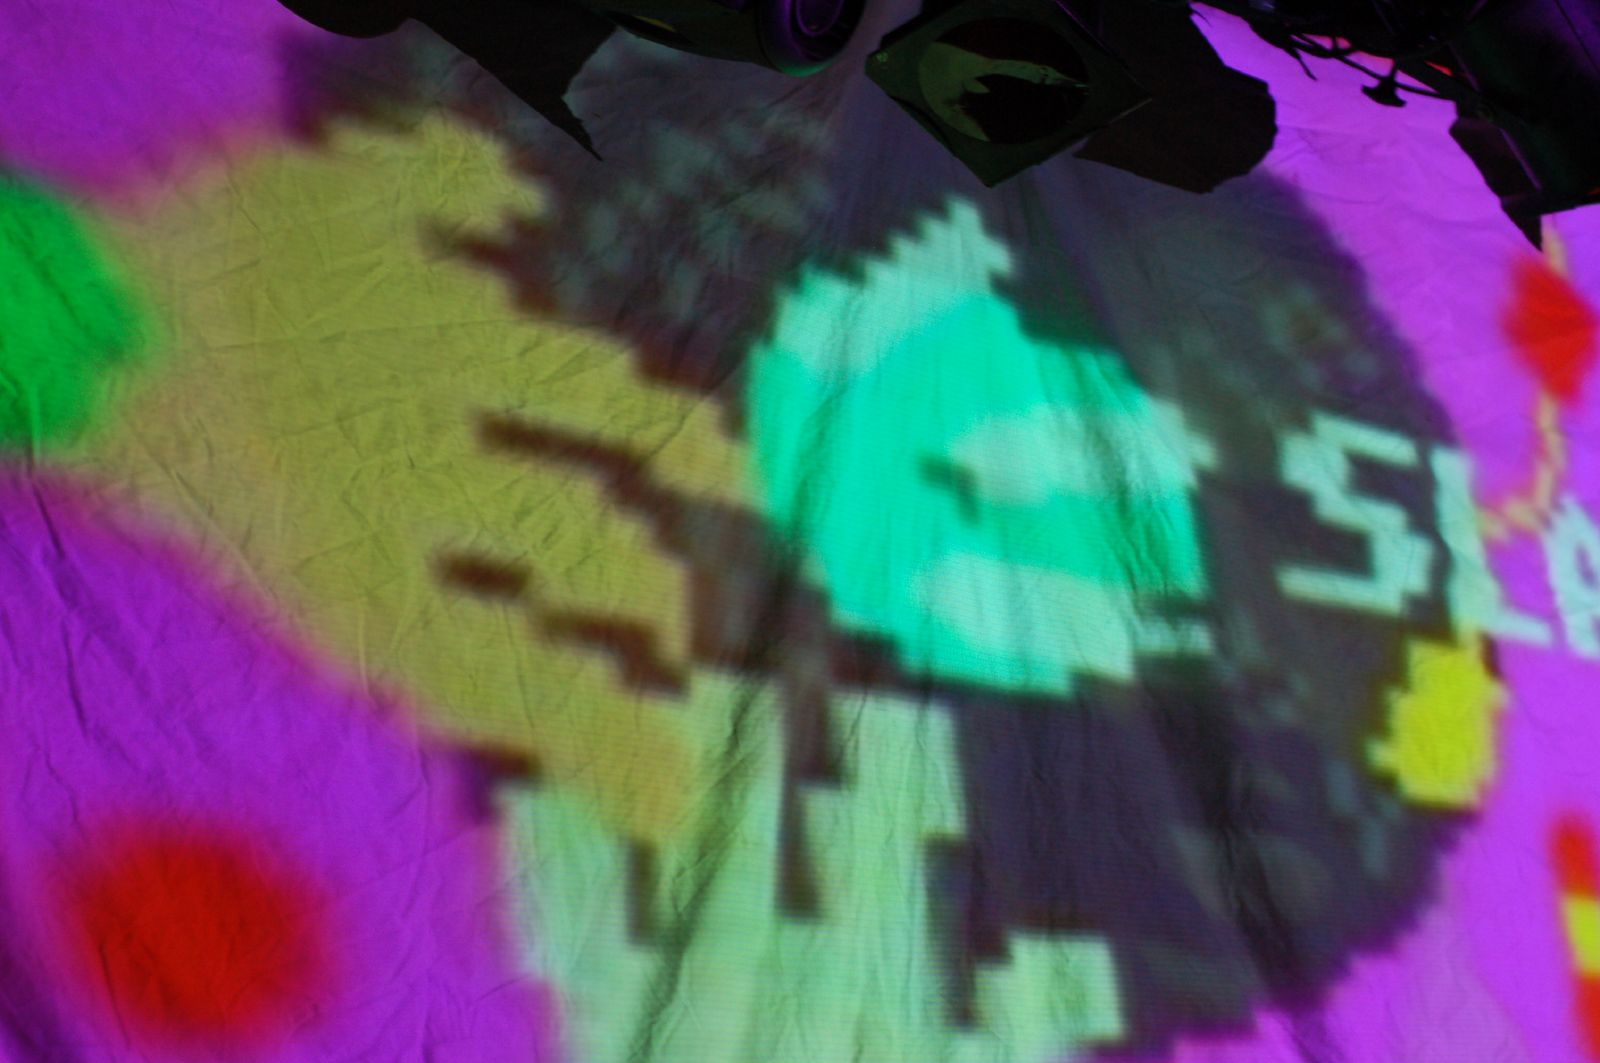 video-projections_284462450_o.jpg